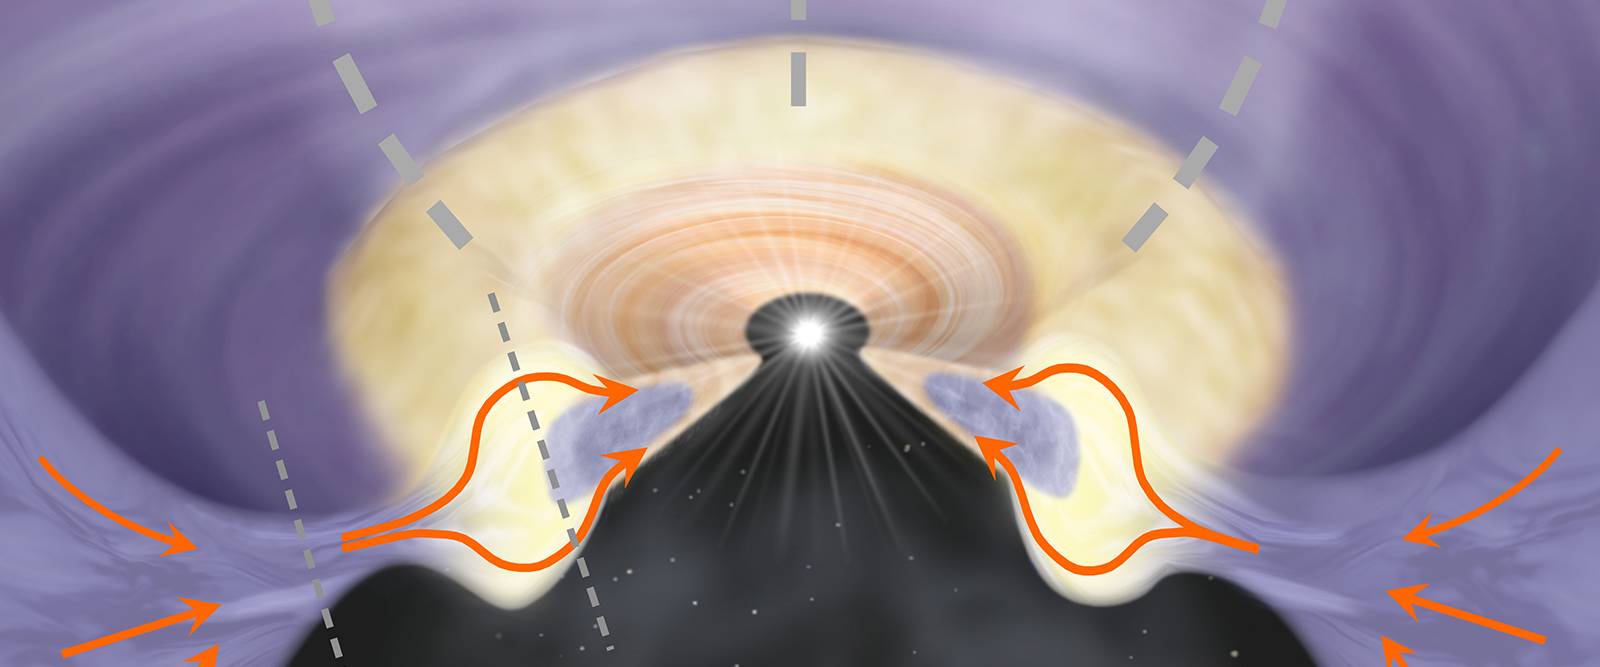 ALMA provides clear view of star-in-the-making